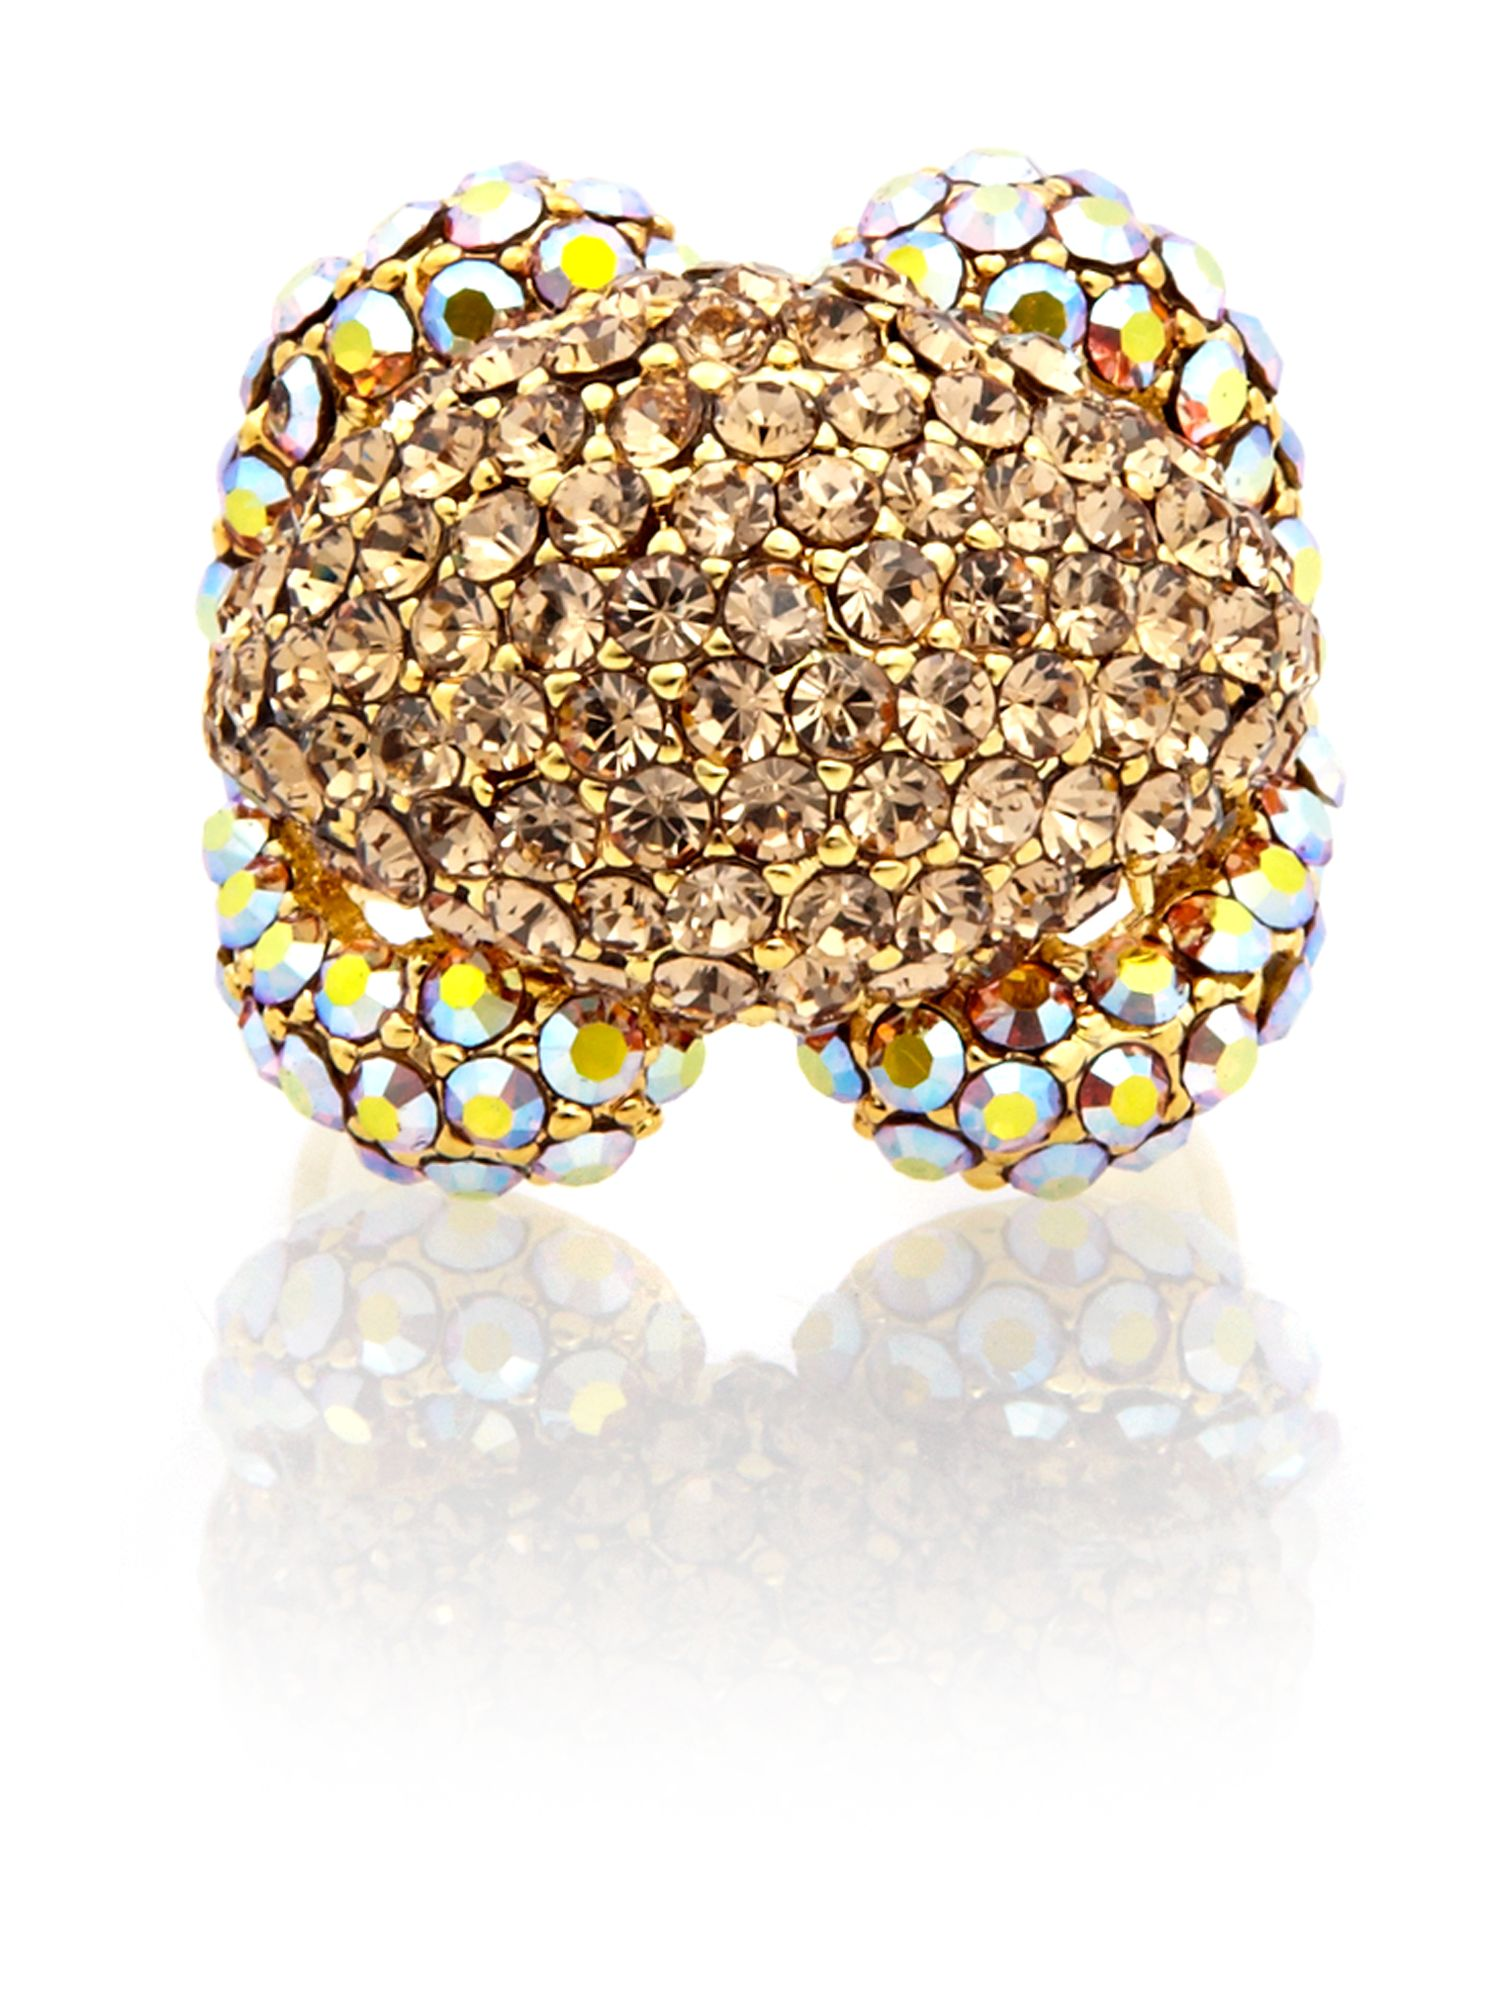 Gemini Gold cluster ring with swarovski crystals